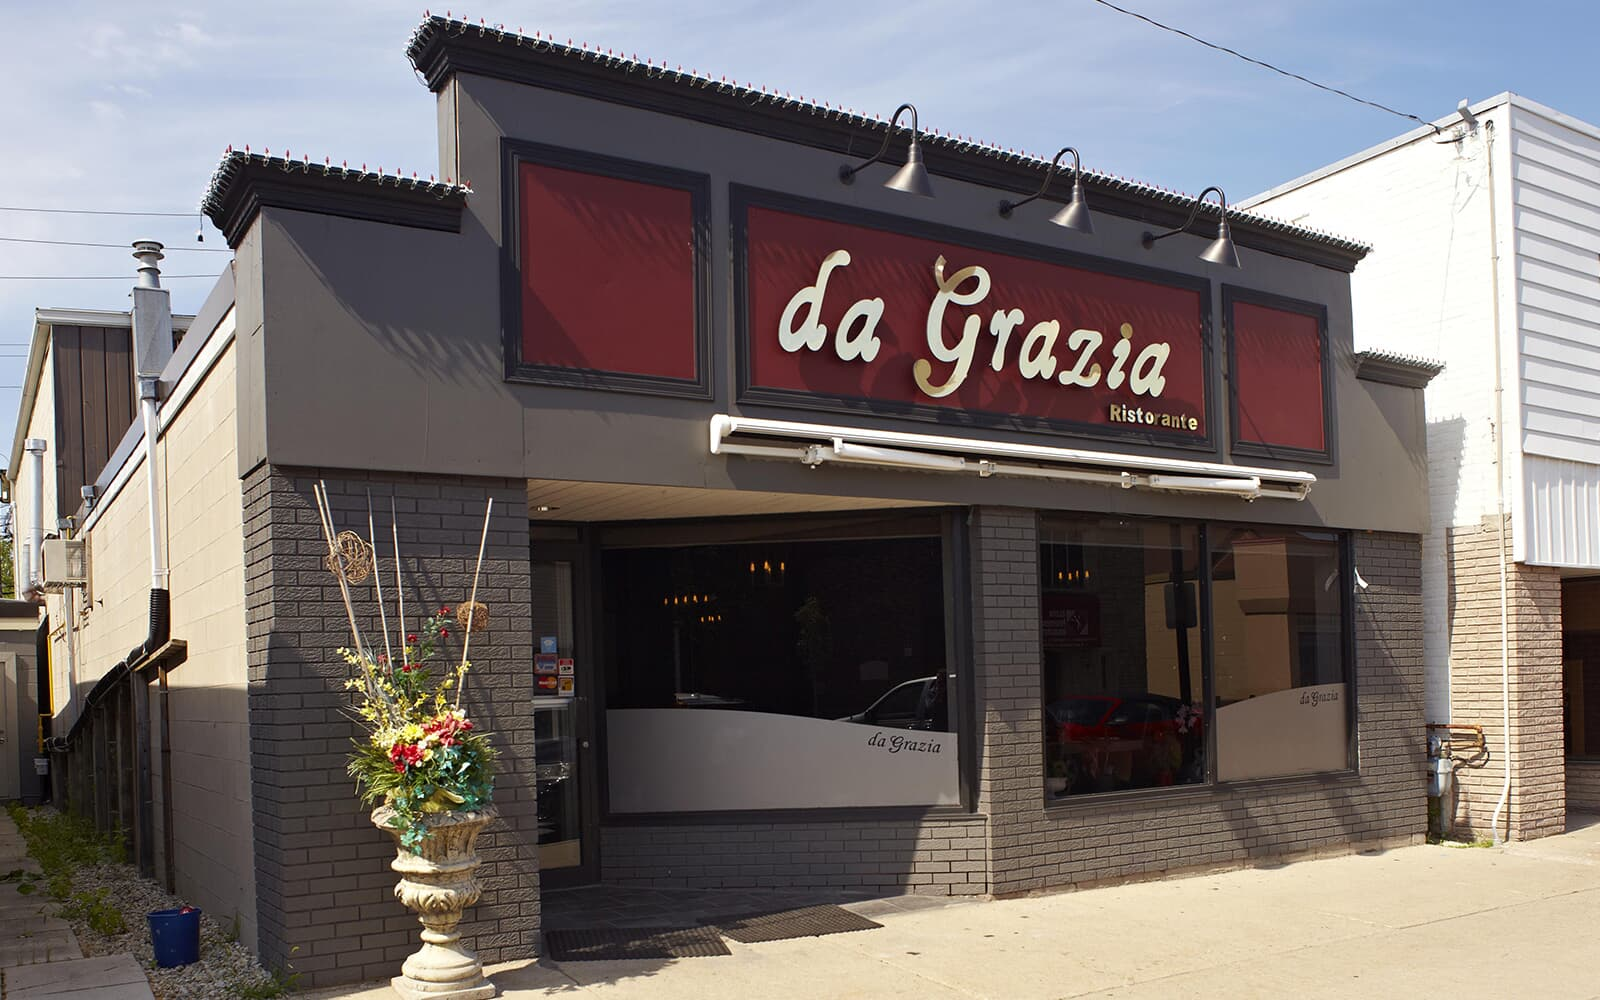 Da Grazia restaurant in Baxter, ON